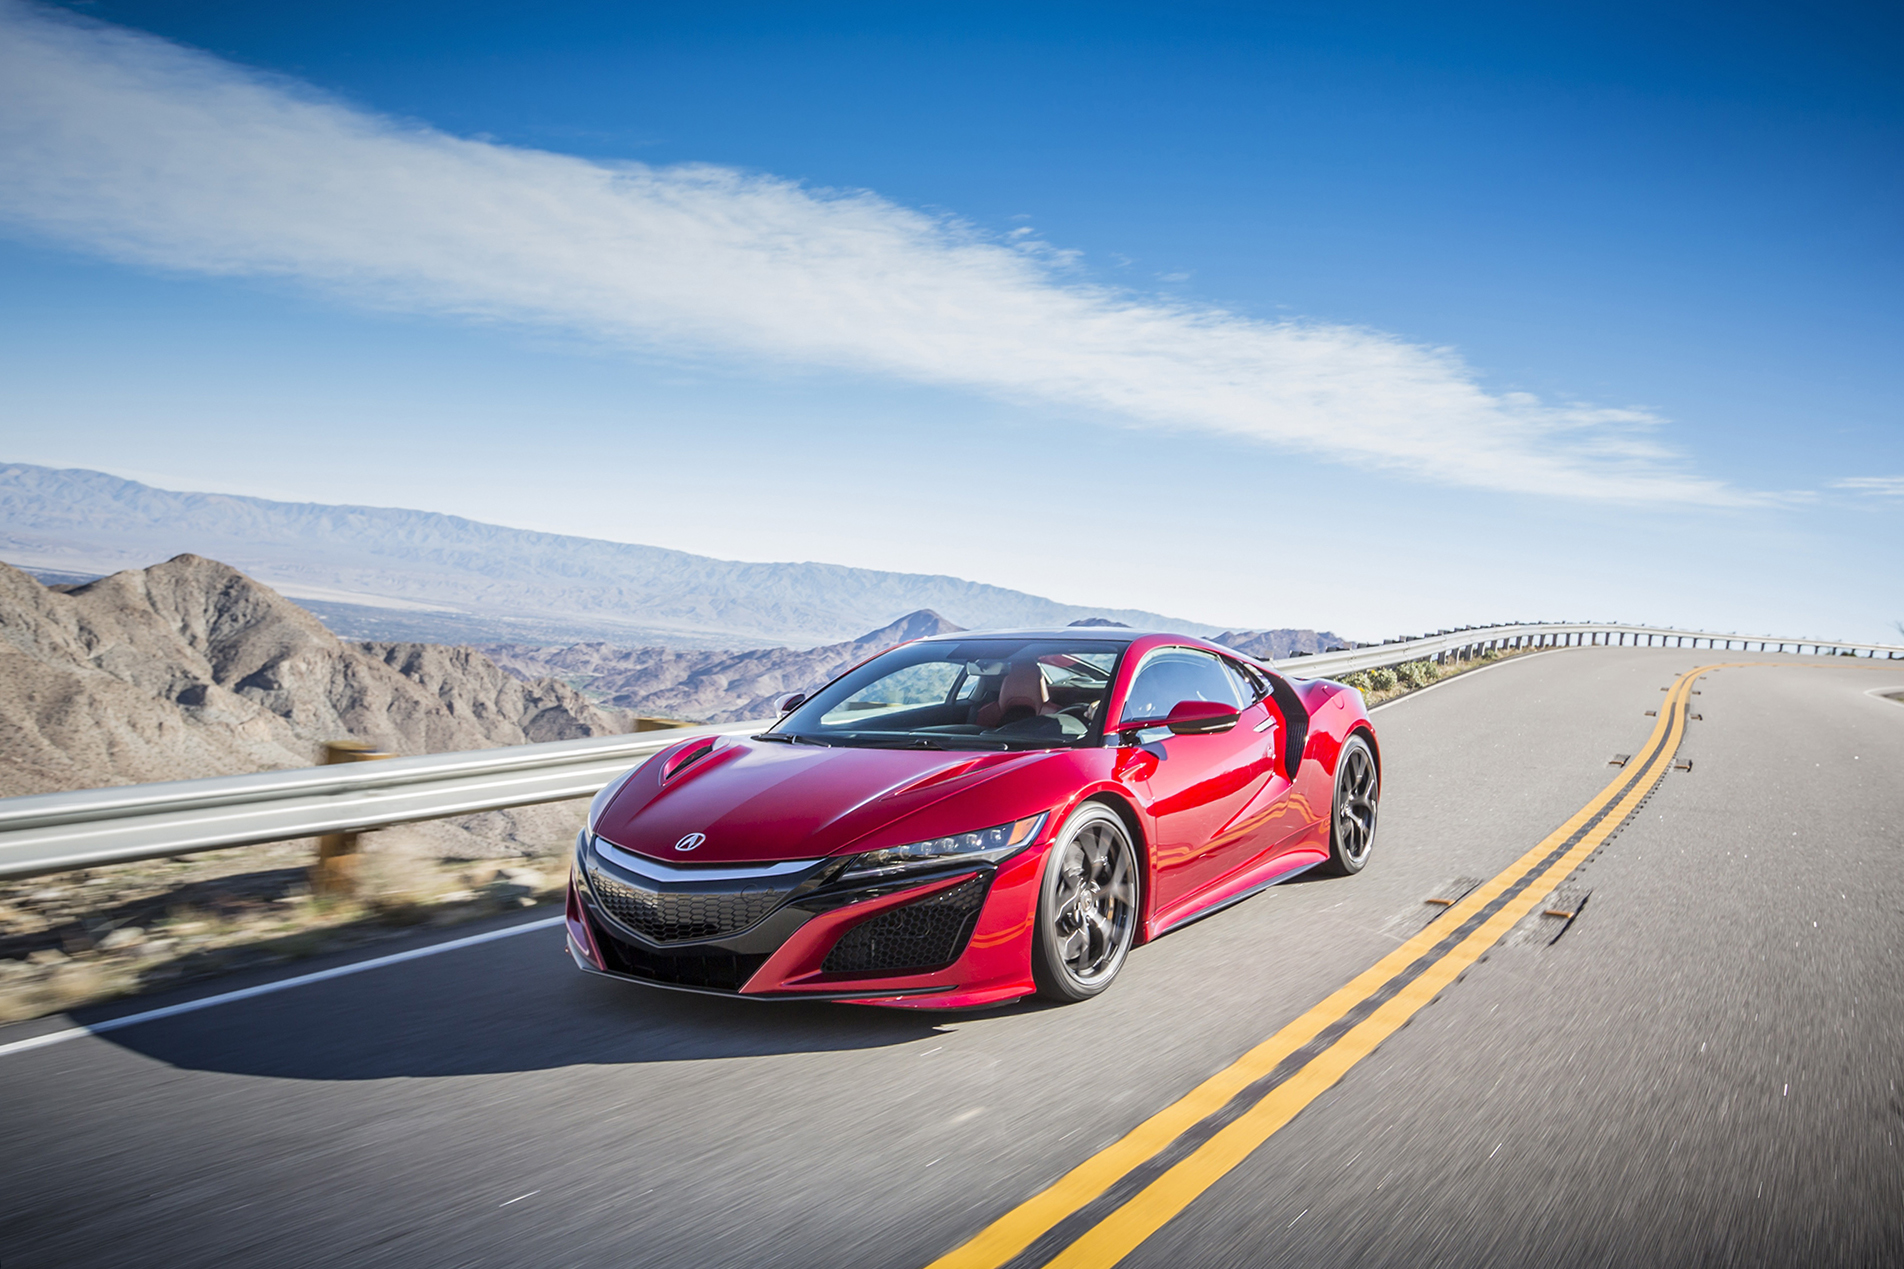 Watch How Acura's NSX Hybrid Supercar Is Made From Start to Finish